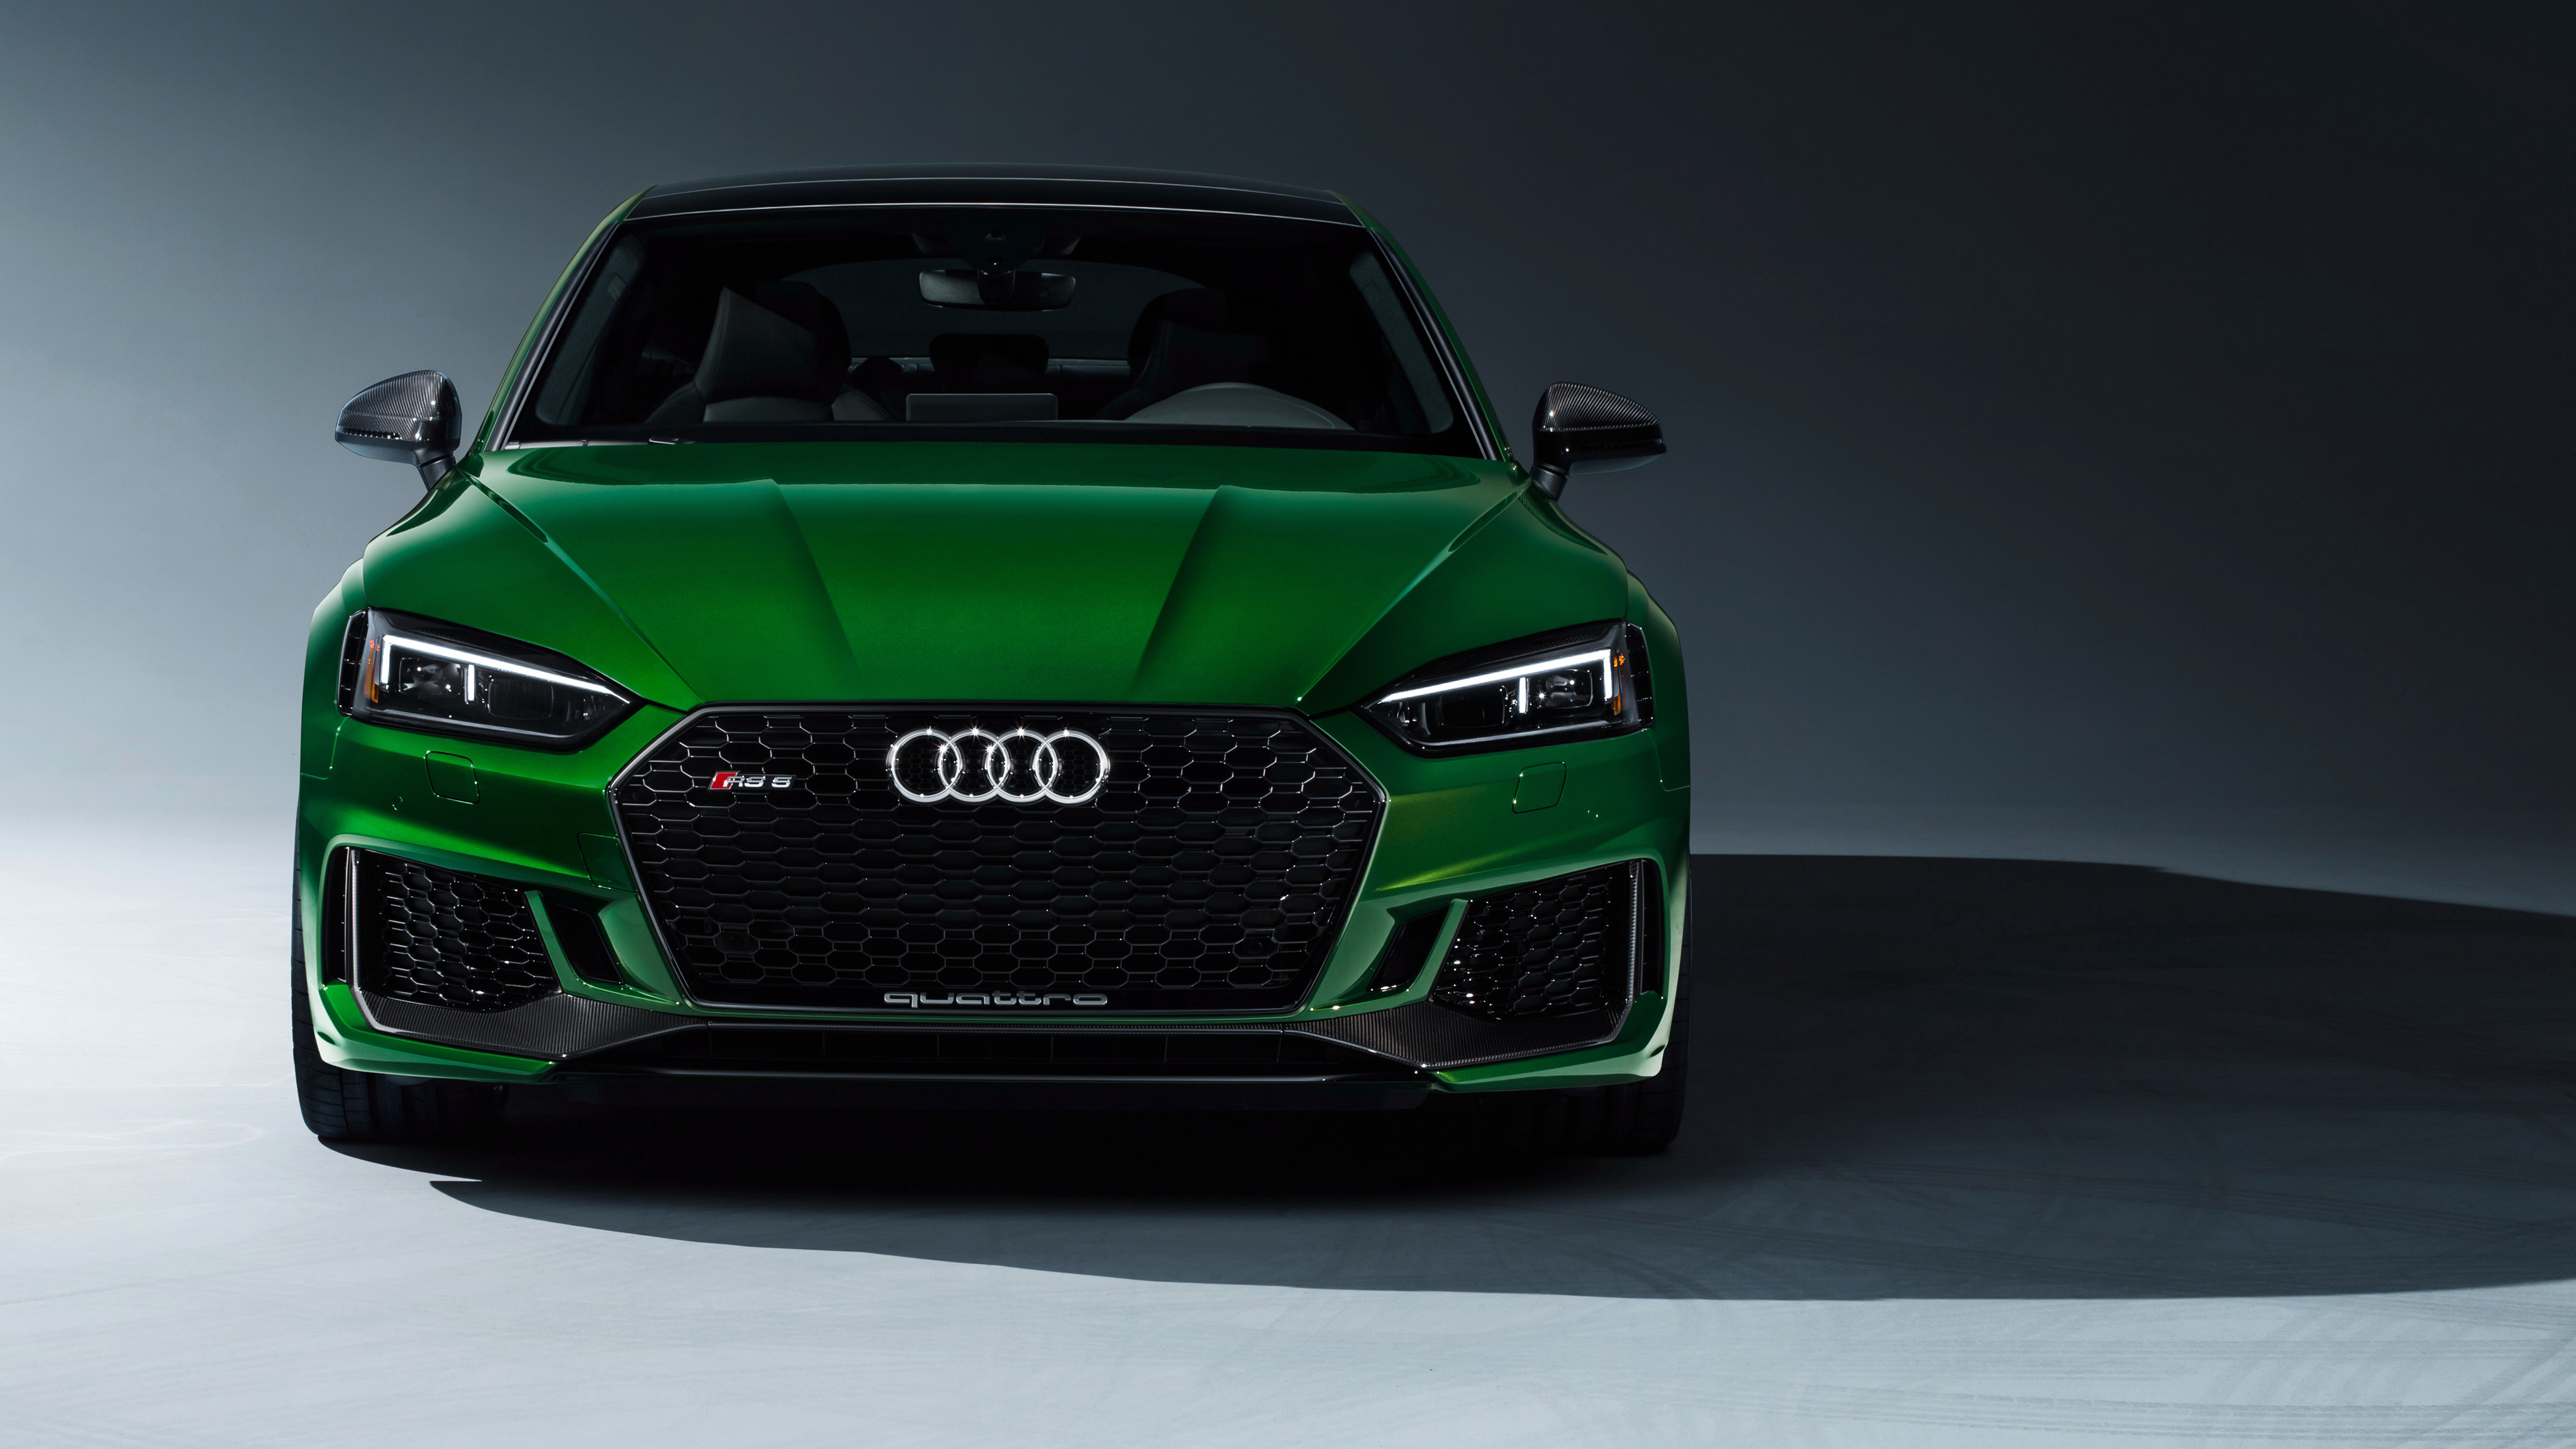 Audi Sport Wallpaper Iphone: 2019 Audi RS5 Sportback 4K 2 Wallpaper